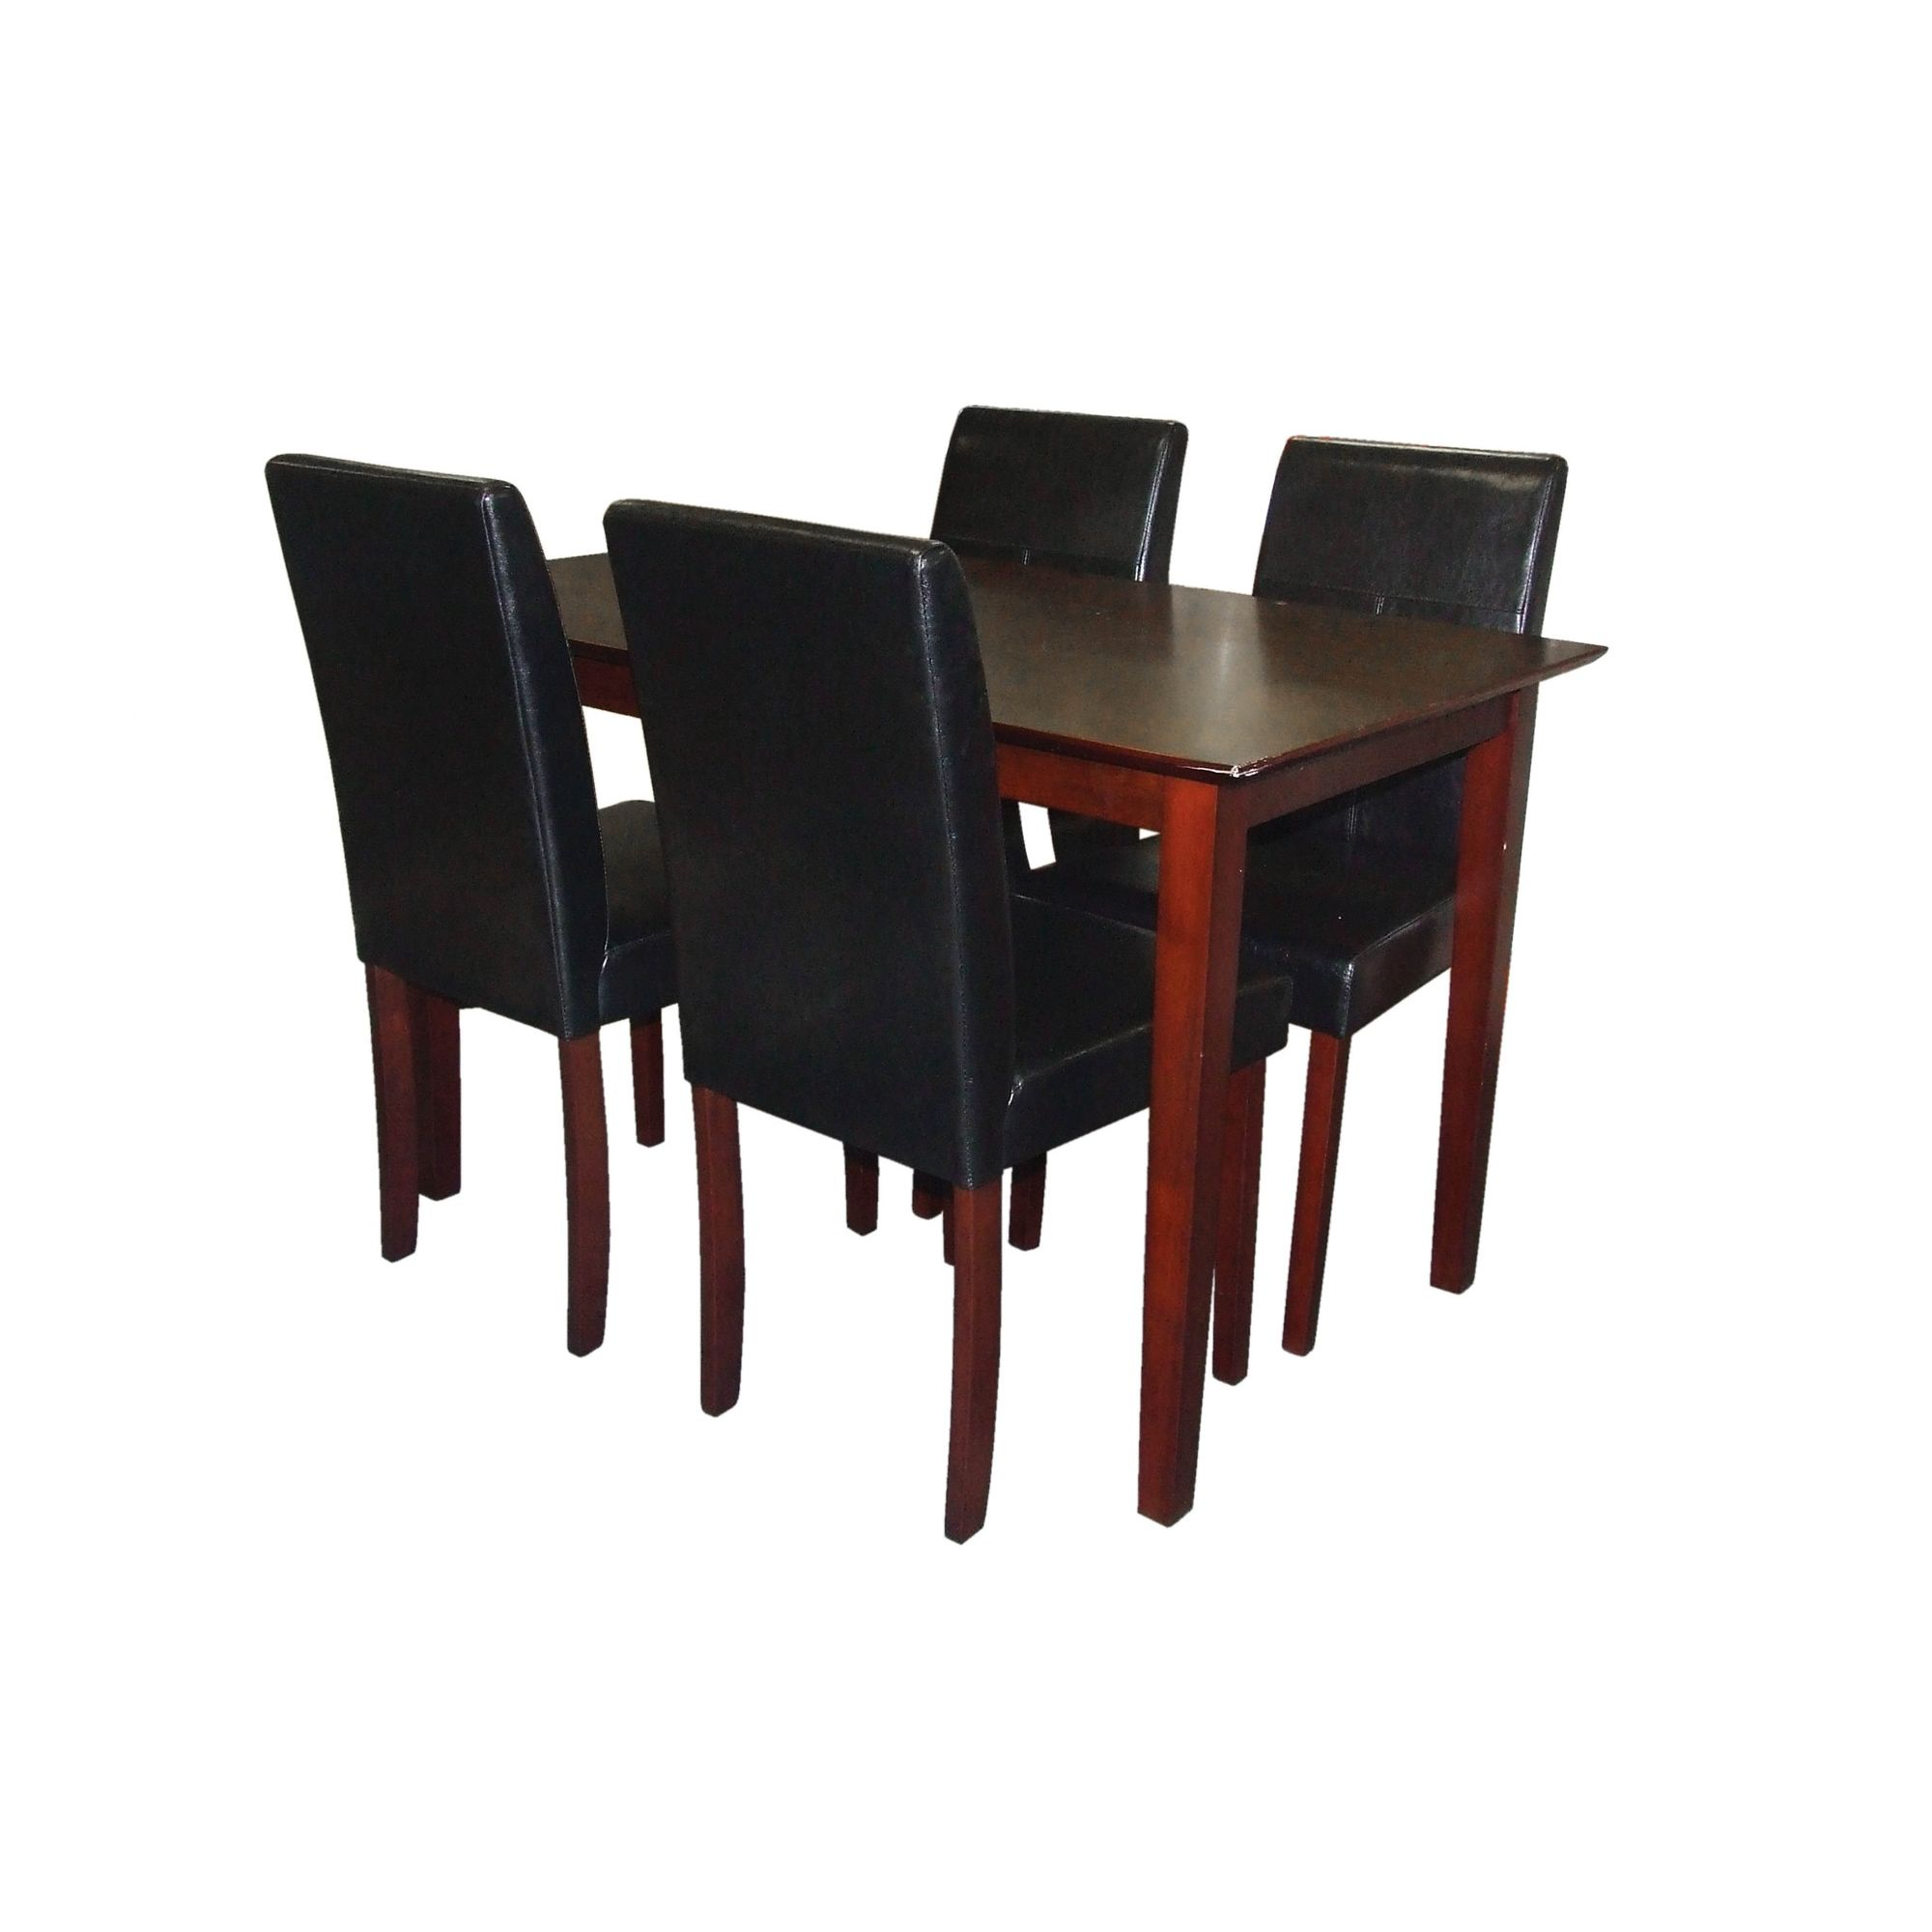 Premier Housewares 5 Piece Dining Set with Light Solid Rubberwood Cozinha - Brown at Tesco Direct